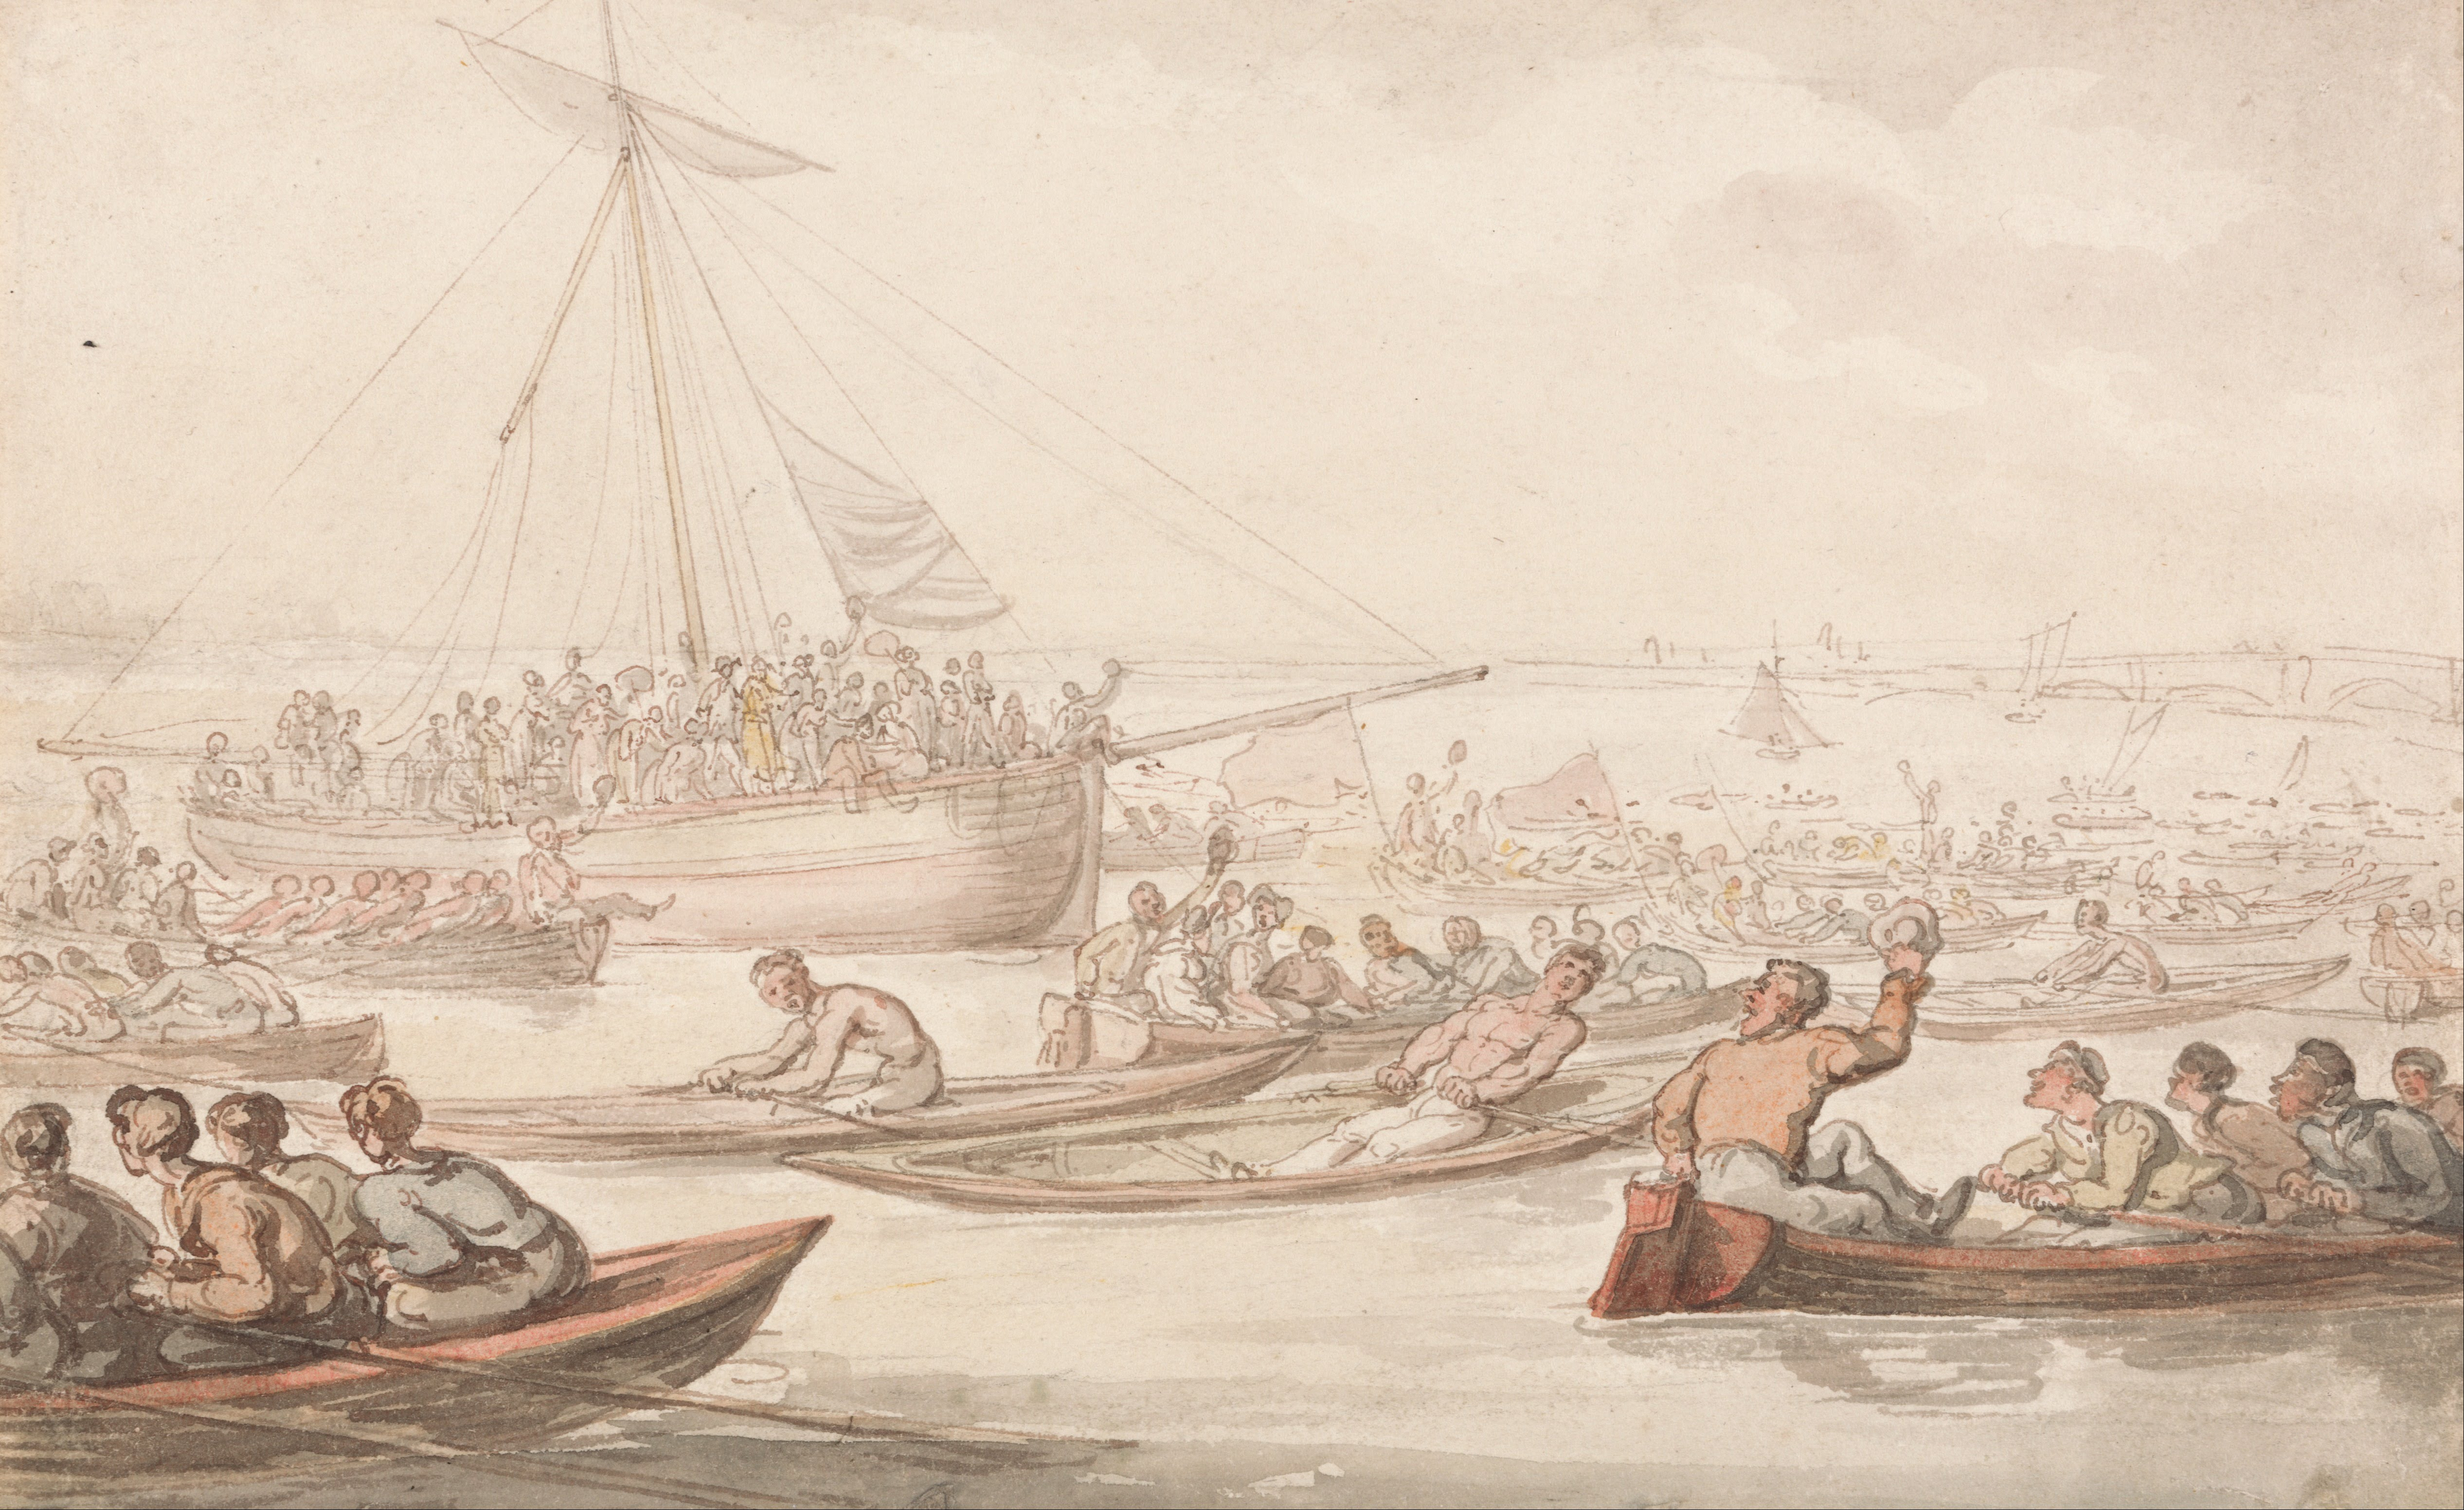 http://upload.wikimedia.org/wikipedia/commons/8/86/Thomas_Rowlandson_-_The_Annual_Sculling_Race_for_Doggett%27s_Coat_and_Badge_-_Google_Art_Project.jpg